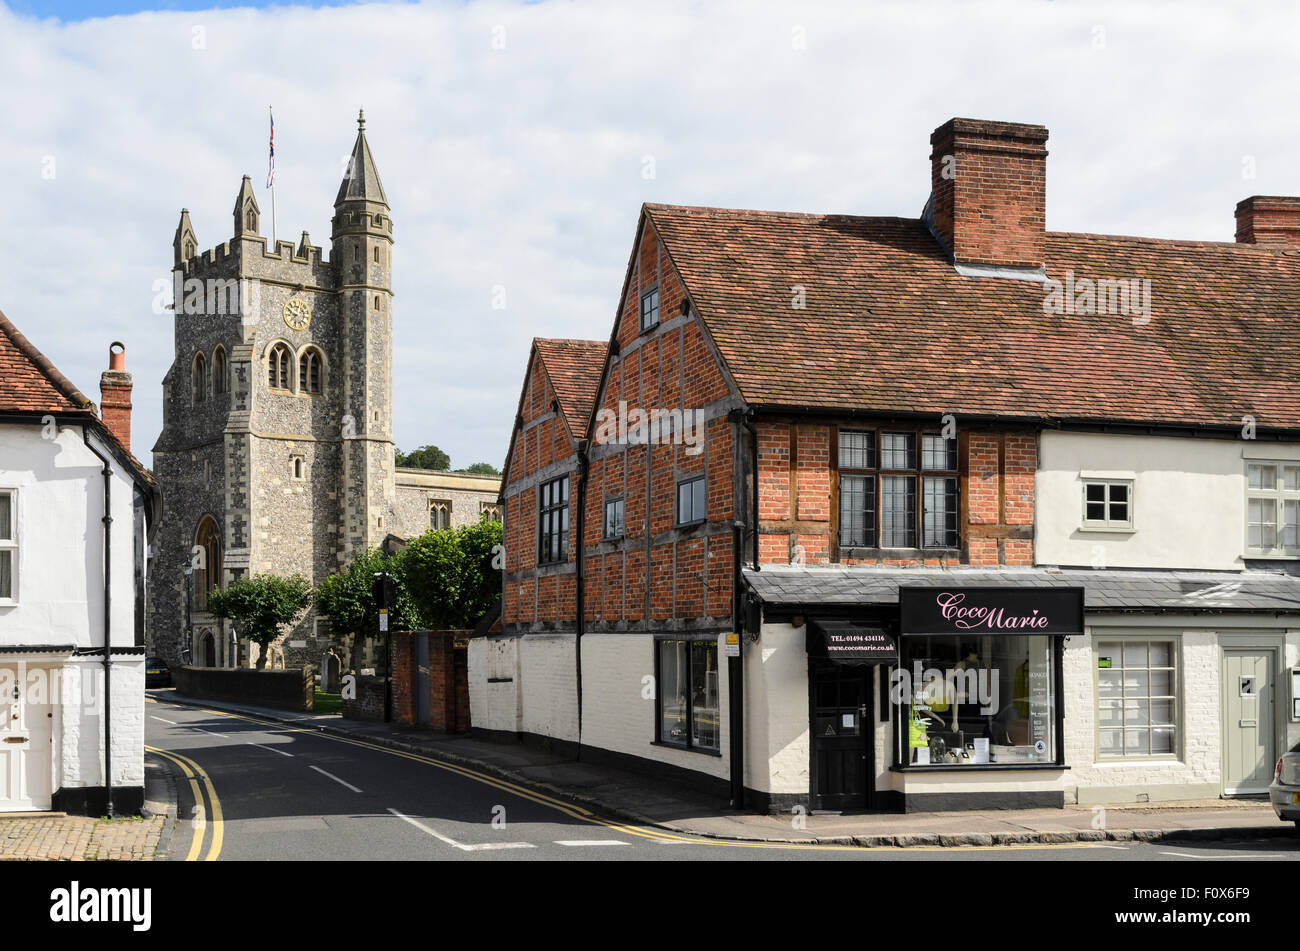 St Mary's Church viewed from the High Street, Old Amersham, England, UK. - Stock Image